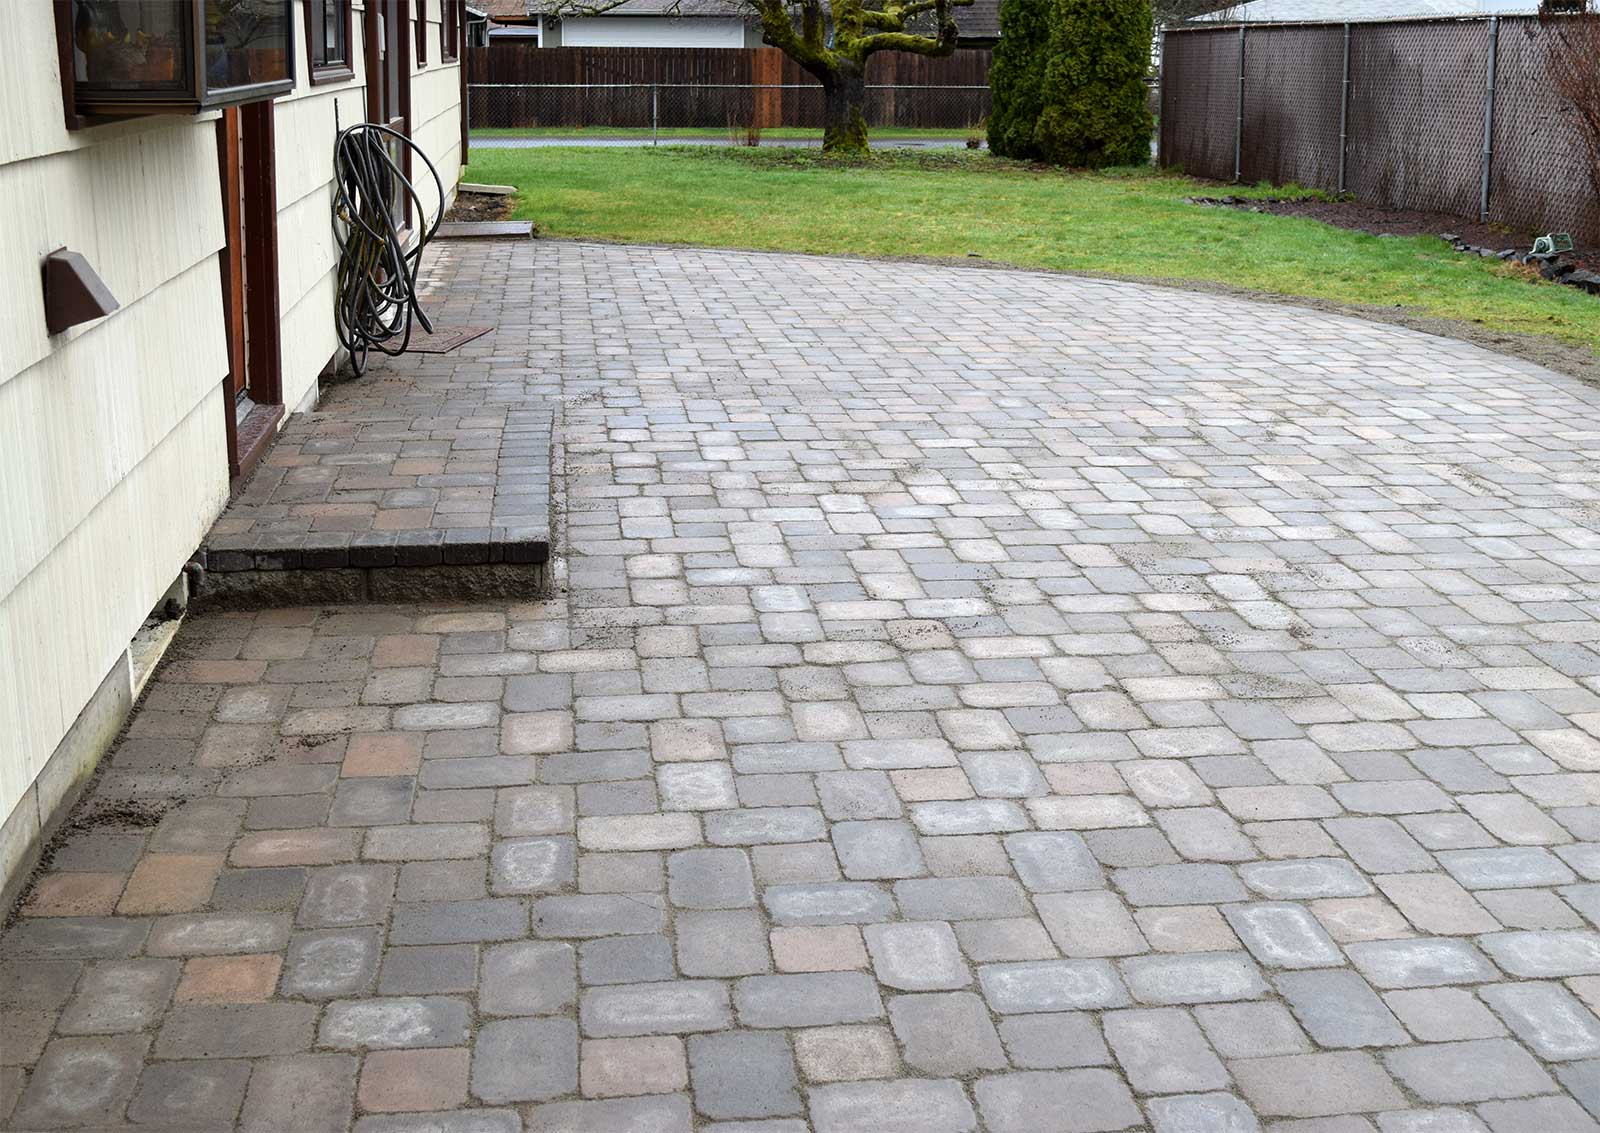 Roca Style Paver Patio in Lacey, Washington - AJB Landscaping & Fence